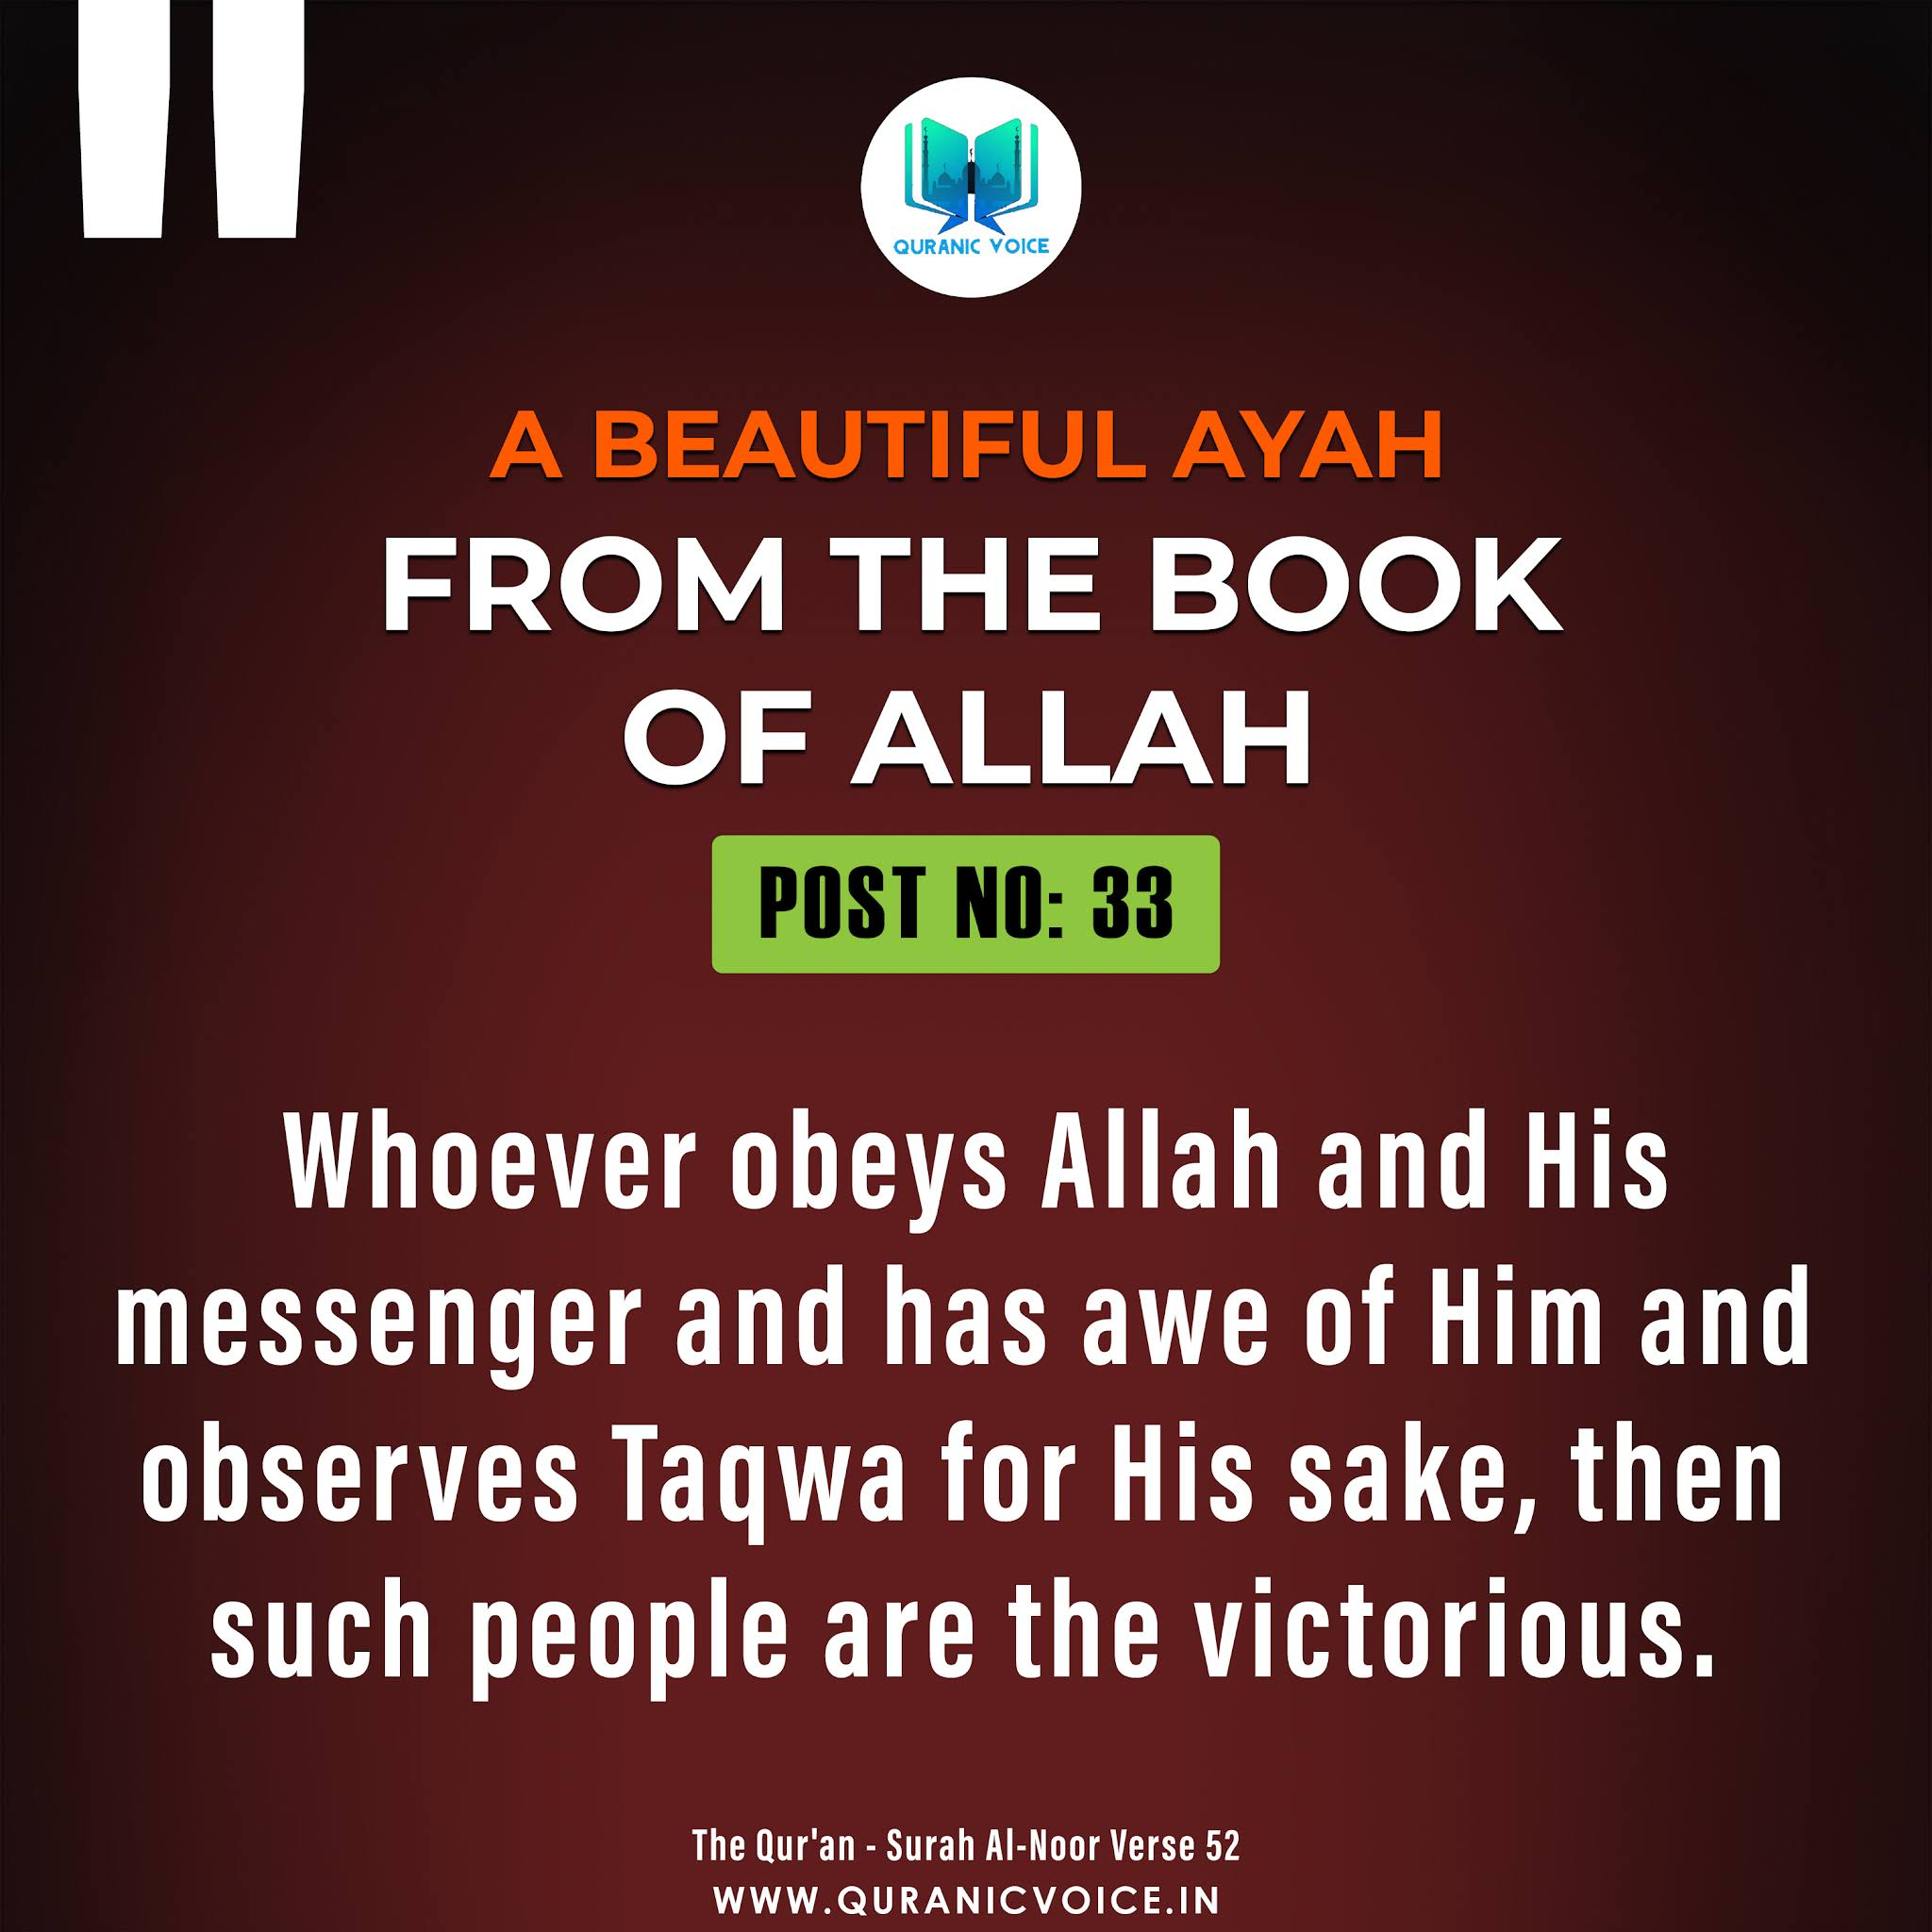 A beautiful ayah from the Book Of Allah {The Qur'an - Surah Al-Noor Verse 52}